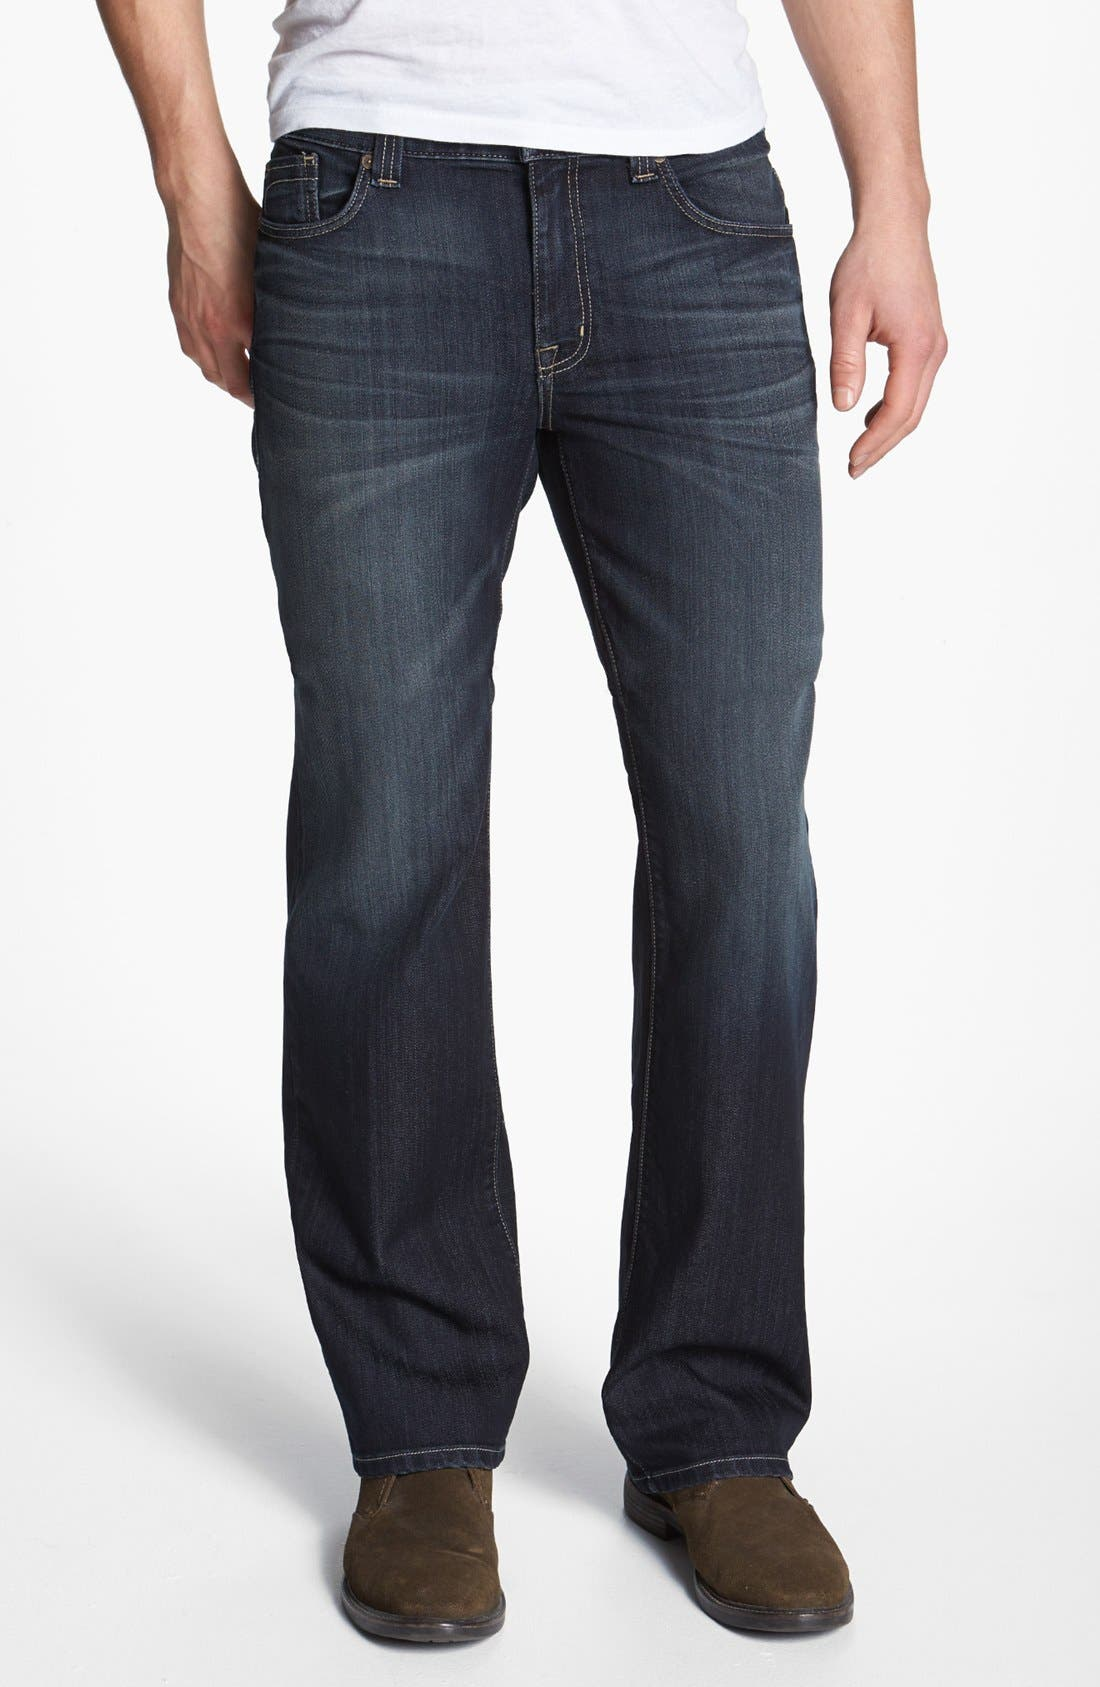 Alternate Image 1 Selected - Fidelity Denim 'Camino' Relaxed Leg Jeans (Trigger Marx)